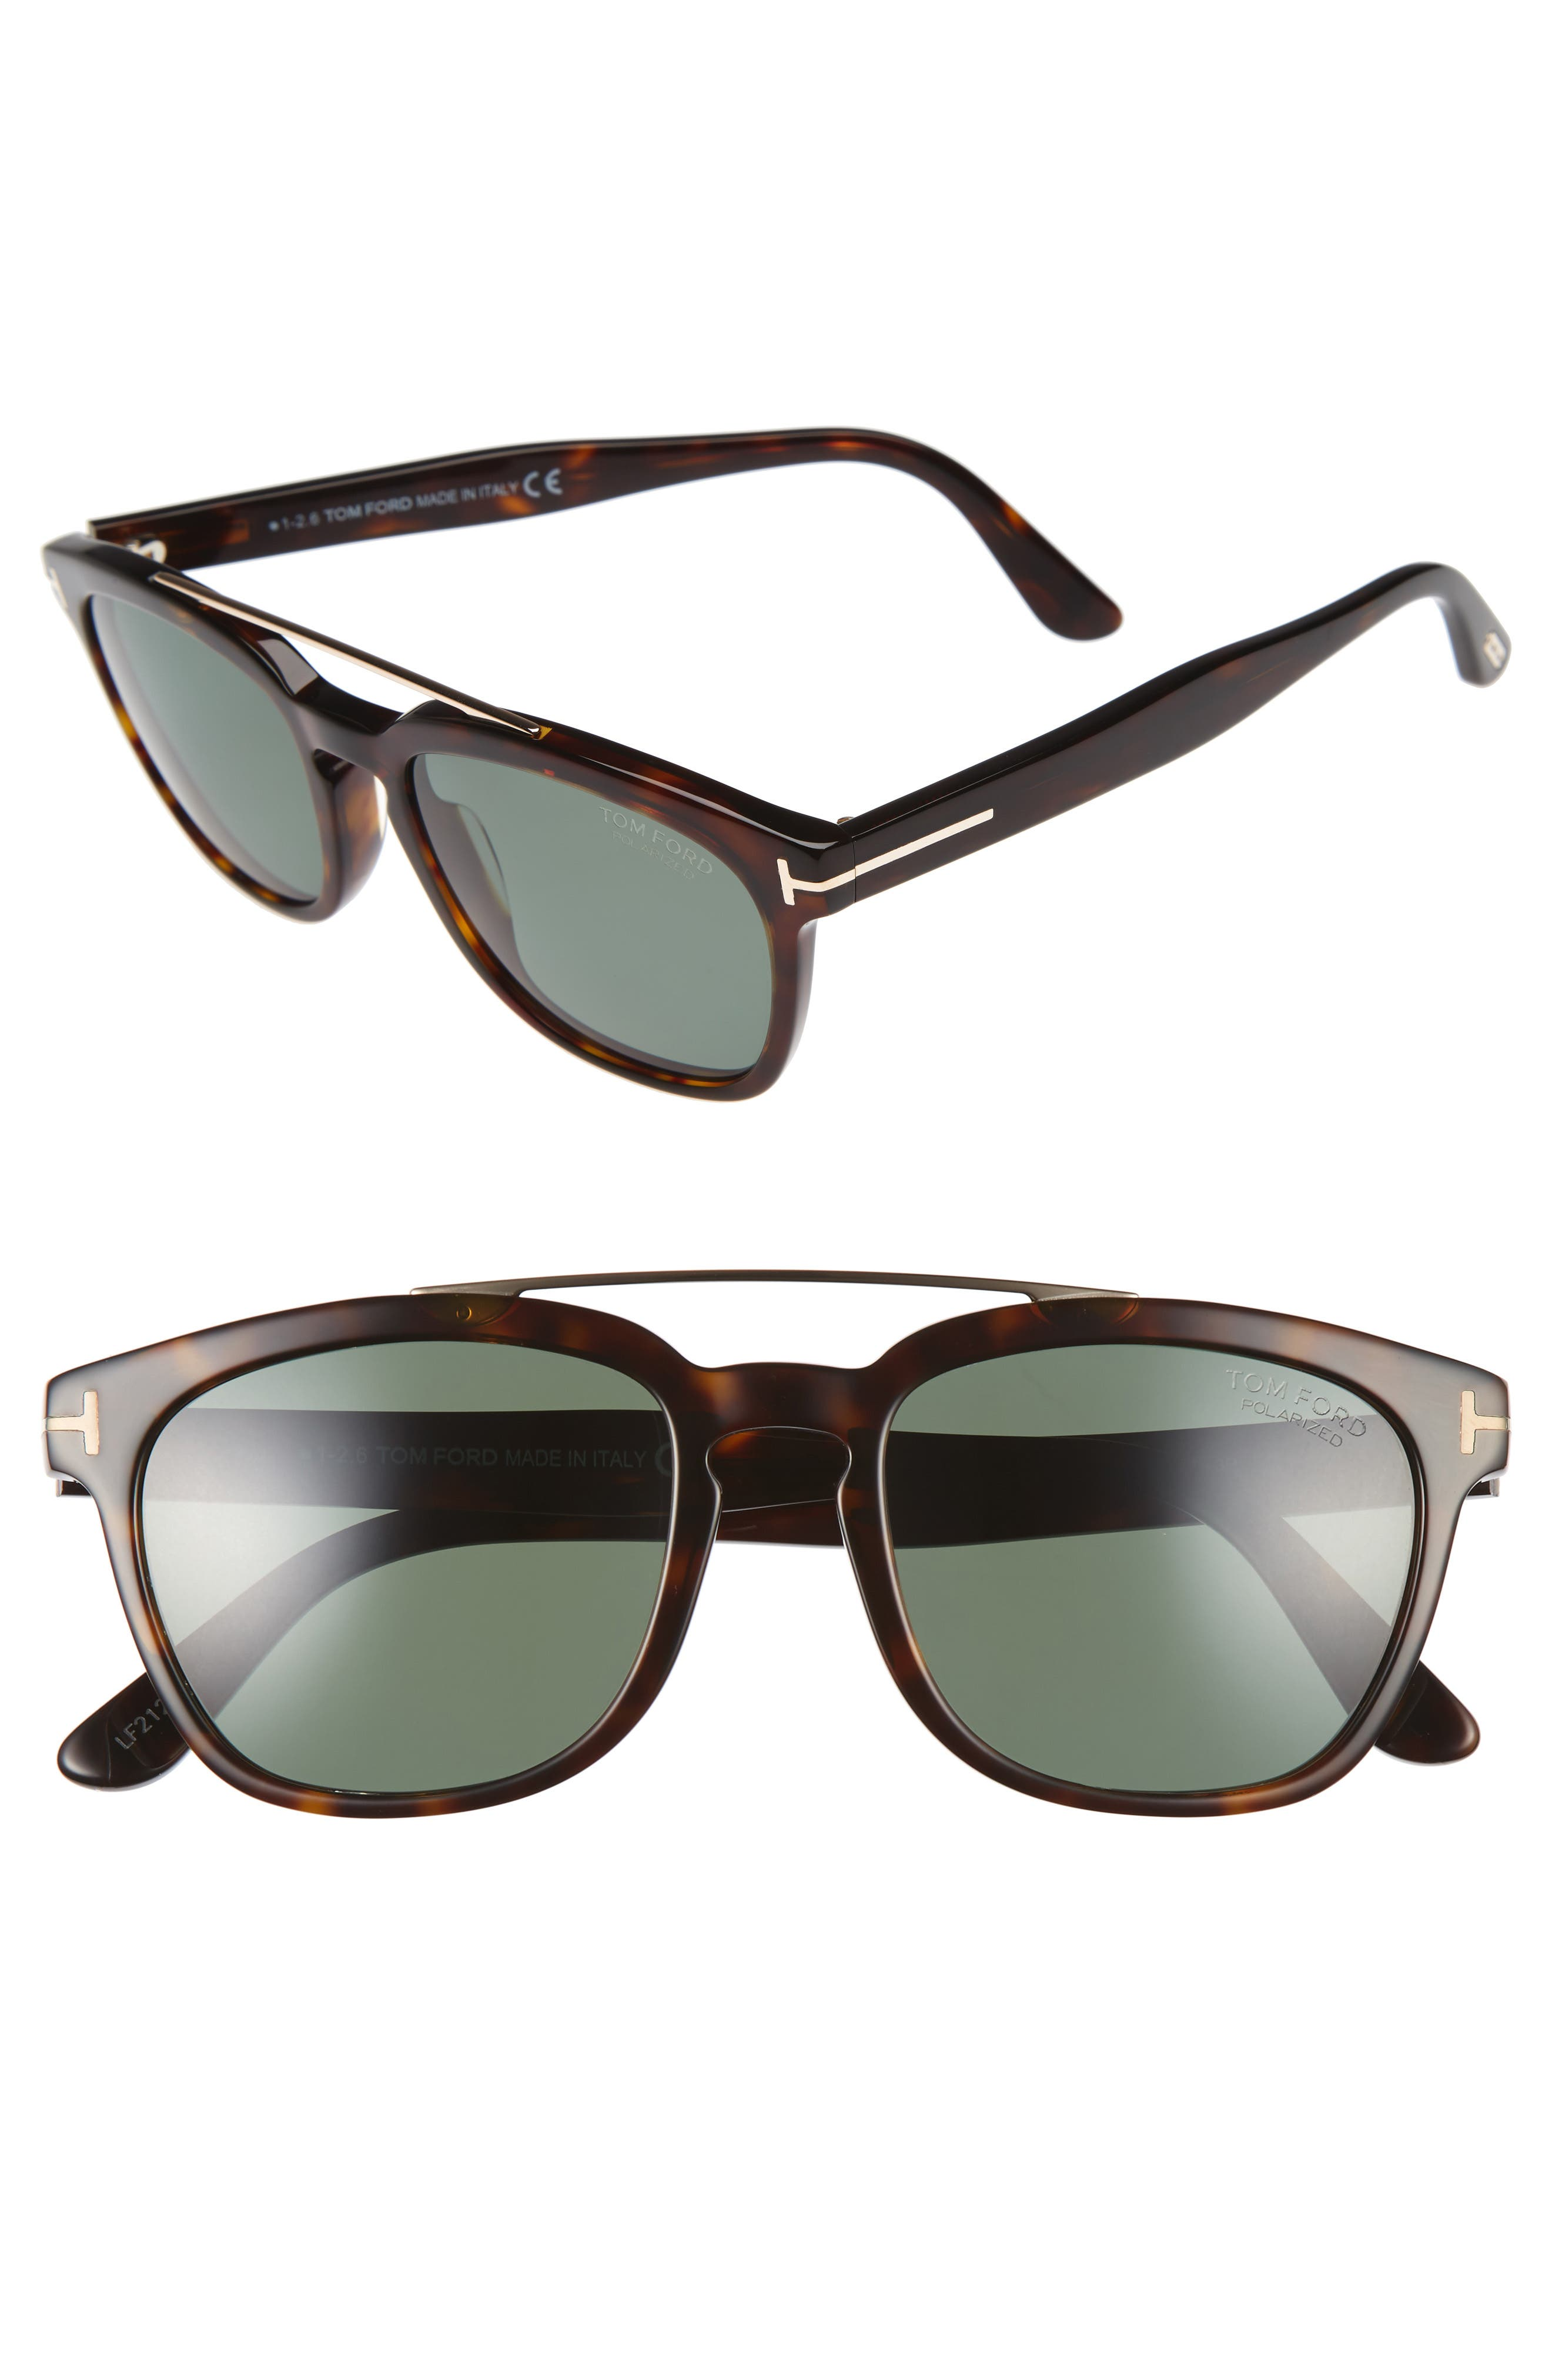 Main Image - Tom Ford Holt 54mm Polarized Sunglasses